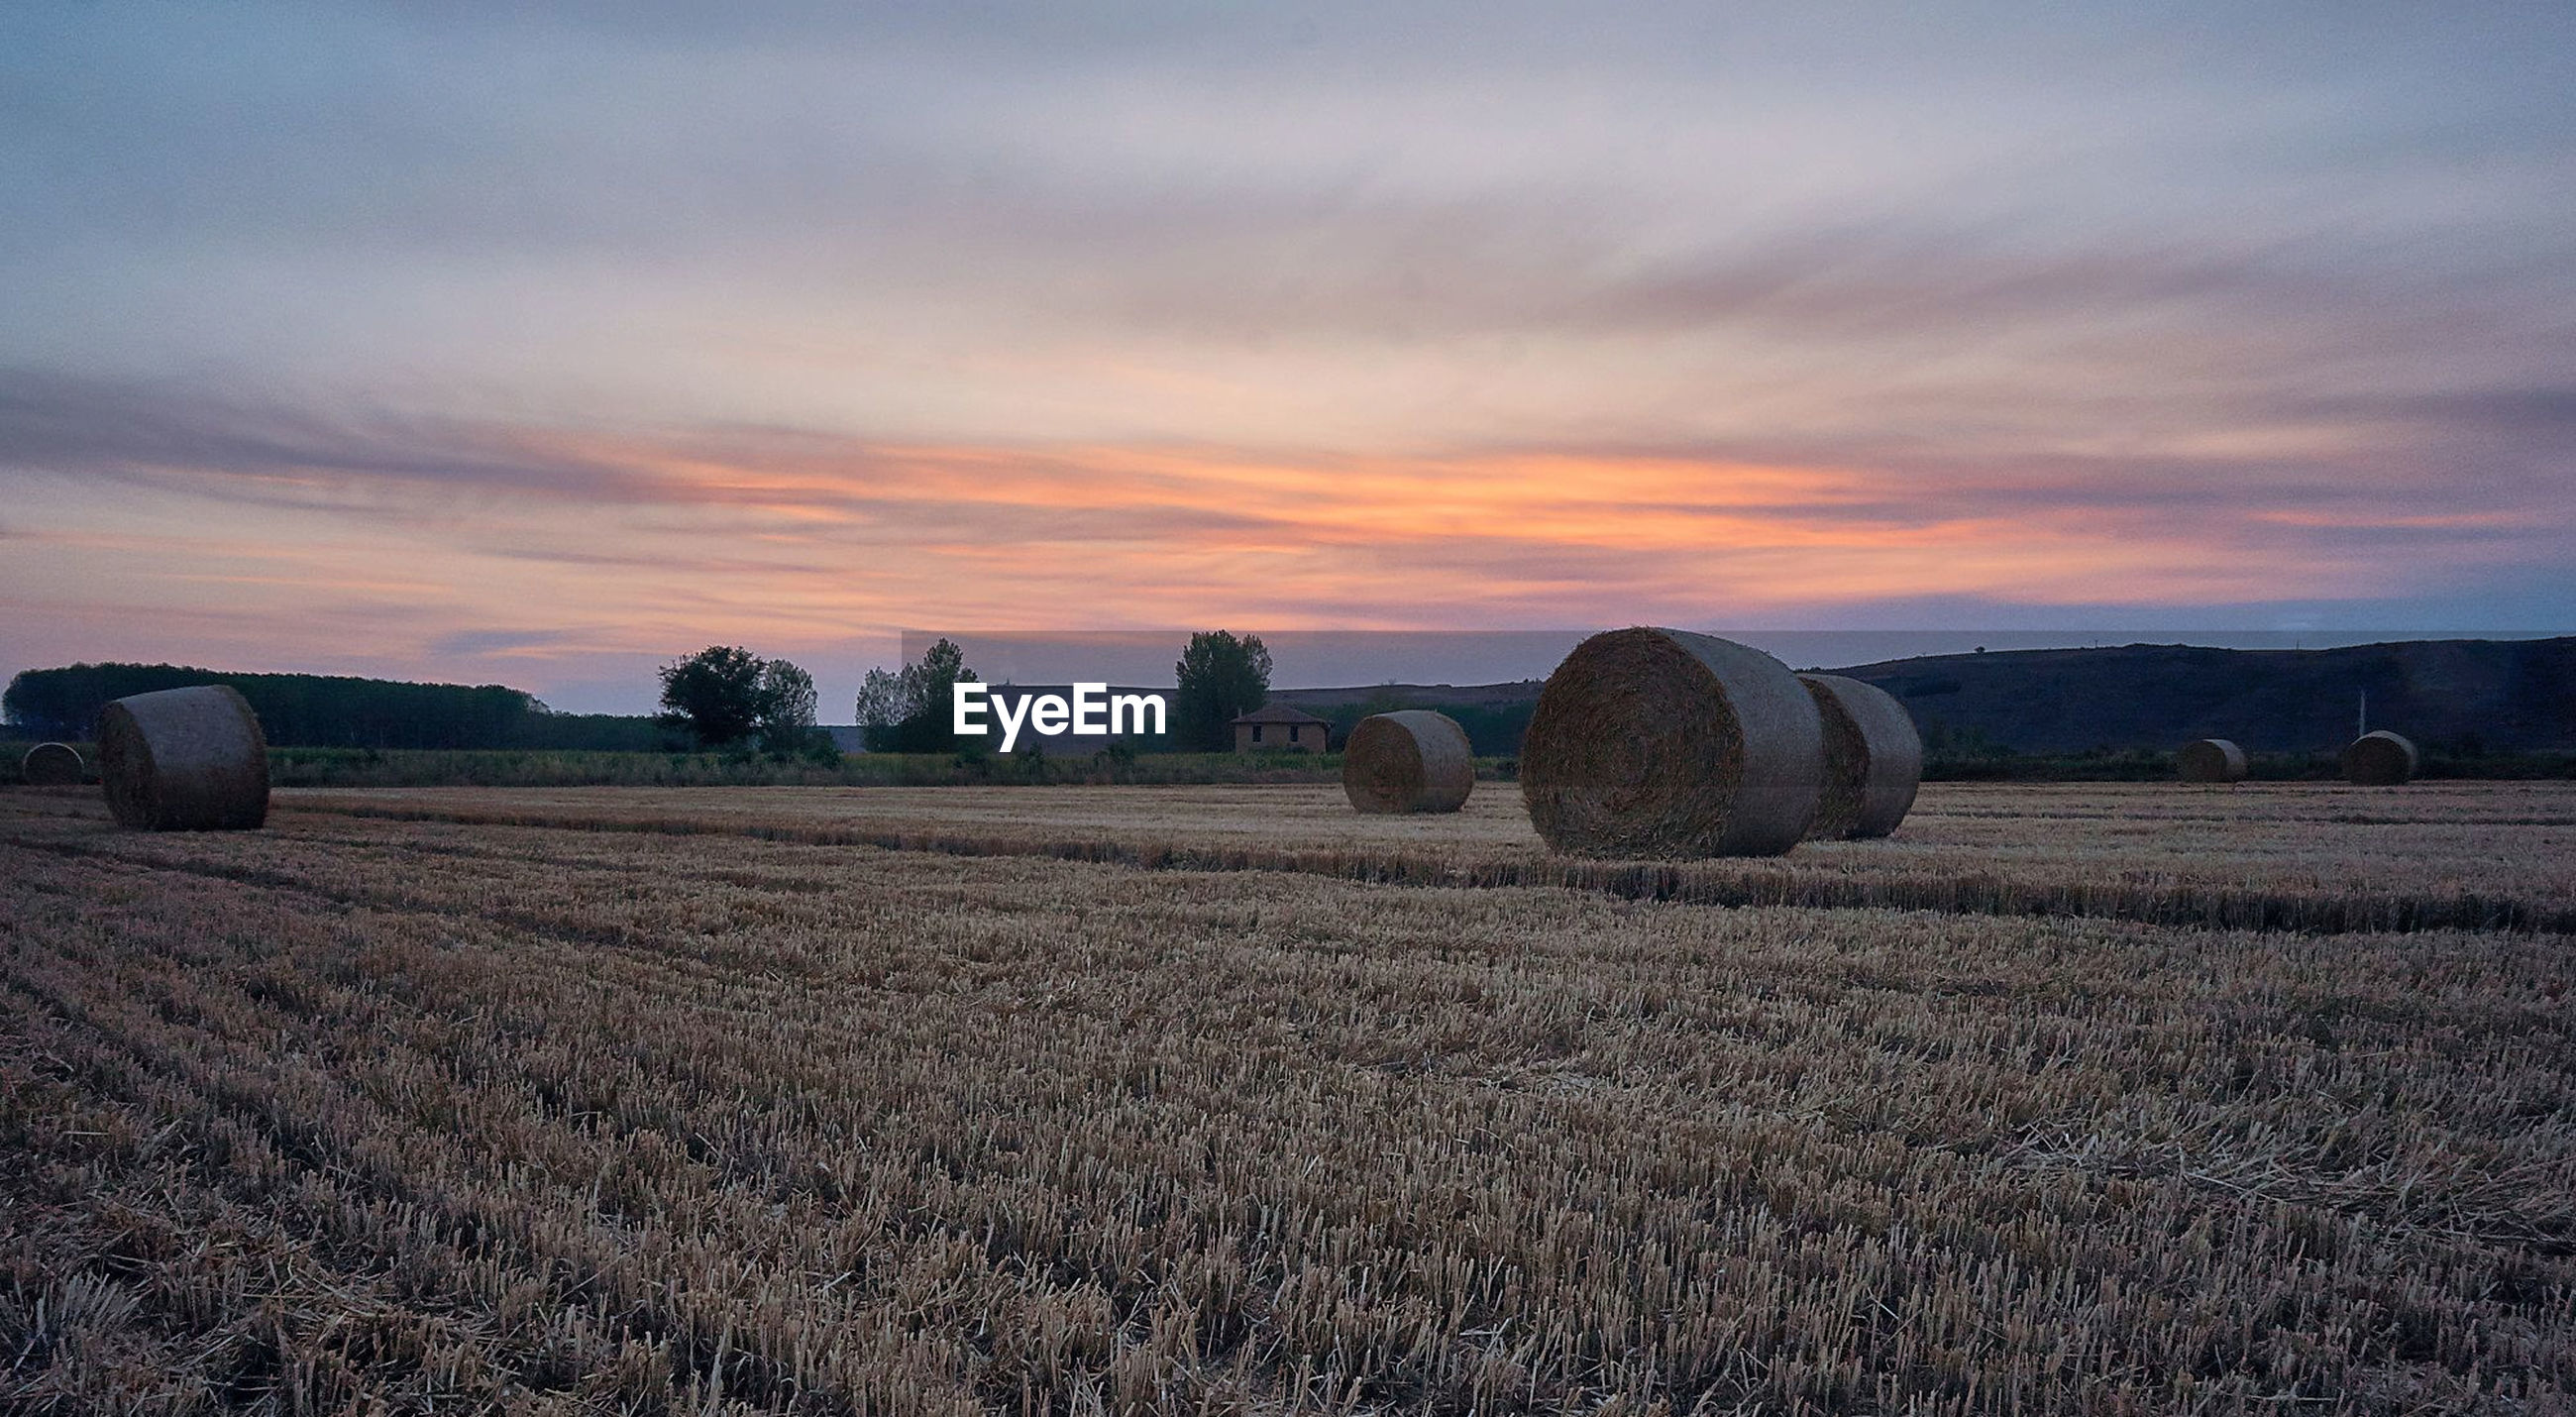 HAY BALES IN FIELD AGAINST SKY DURING SUNSET